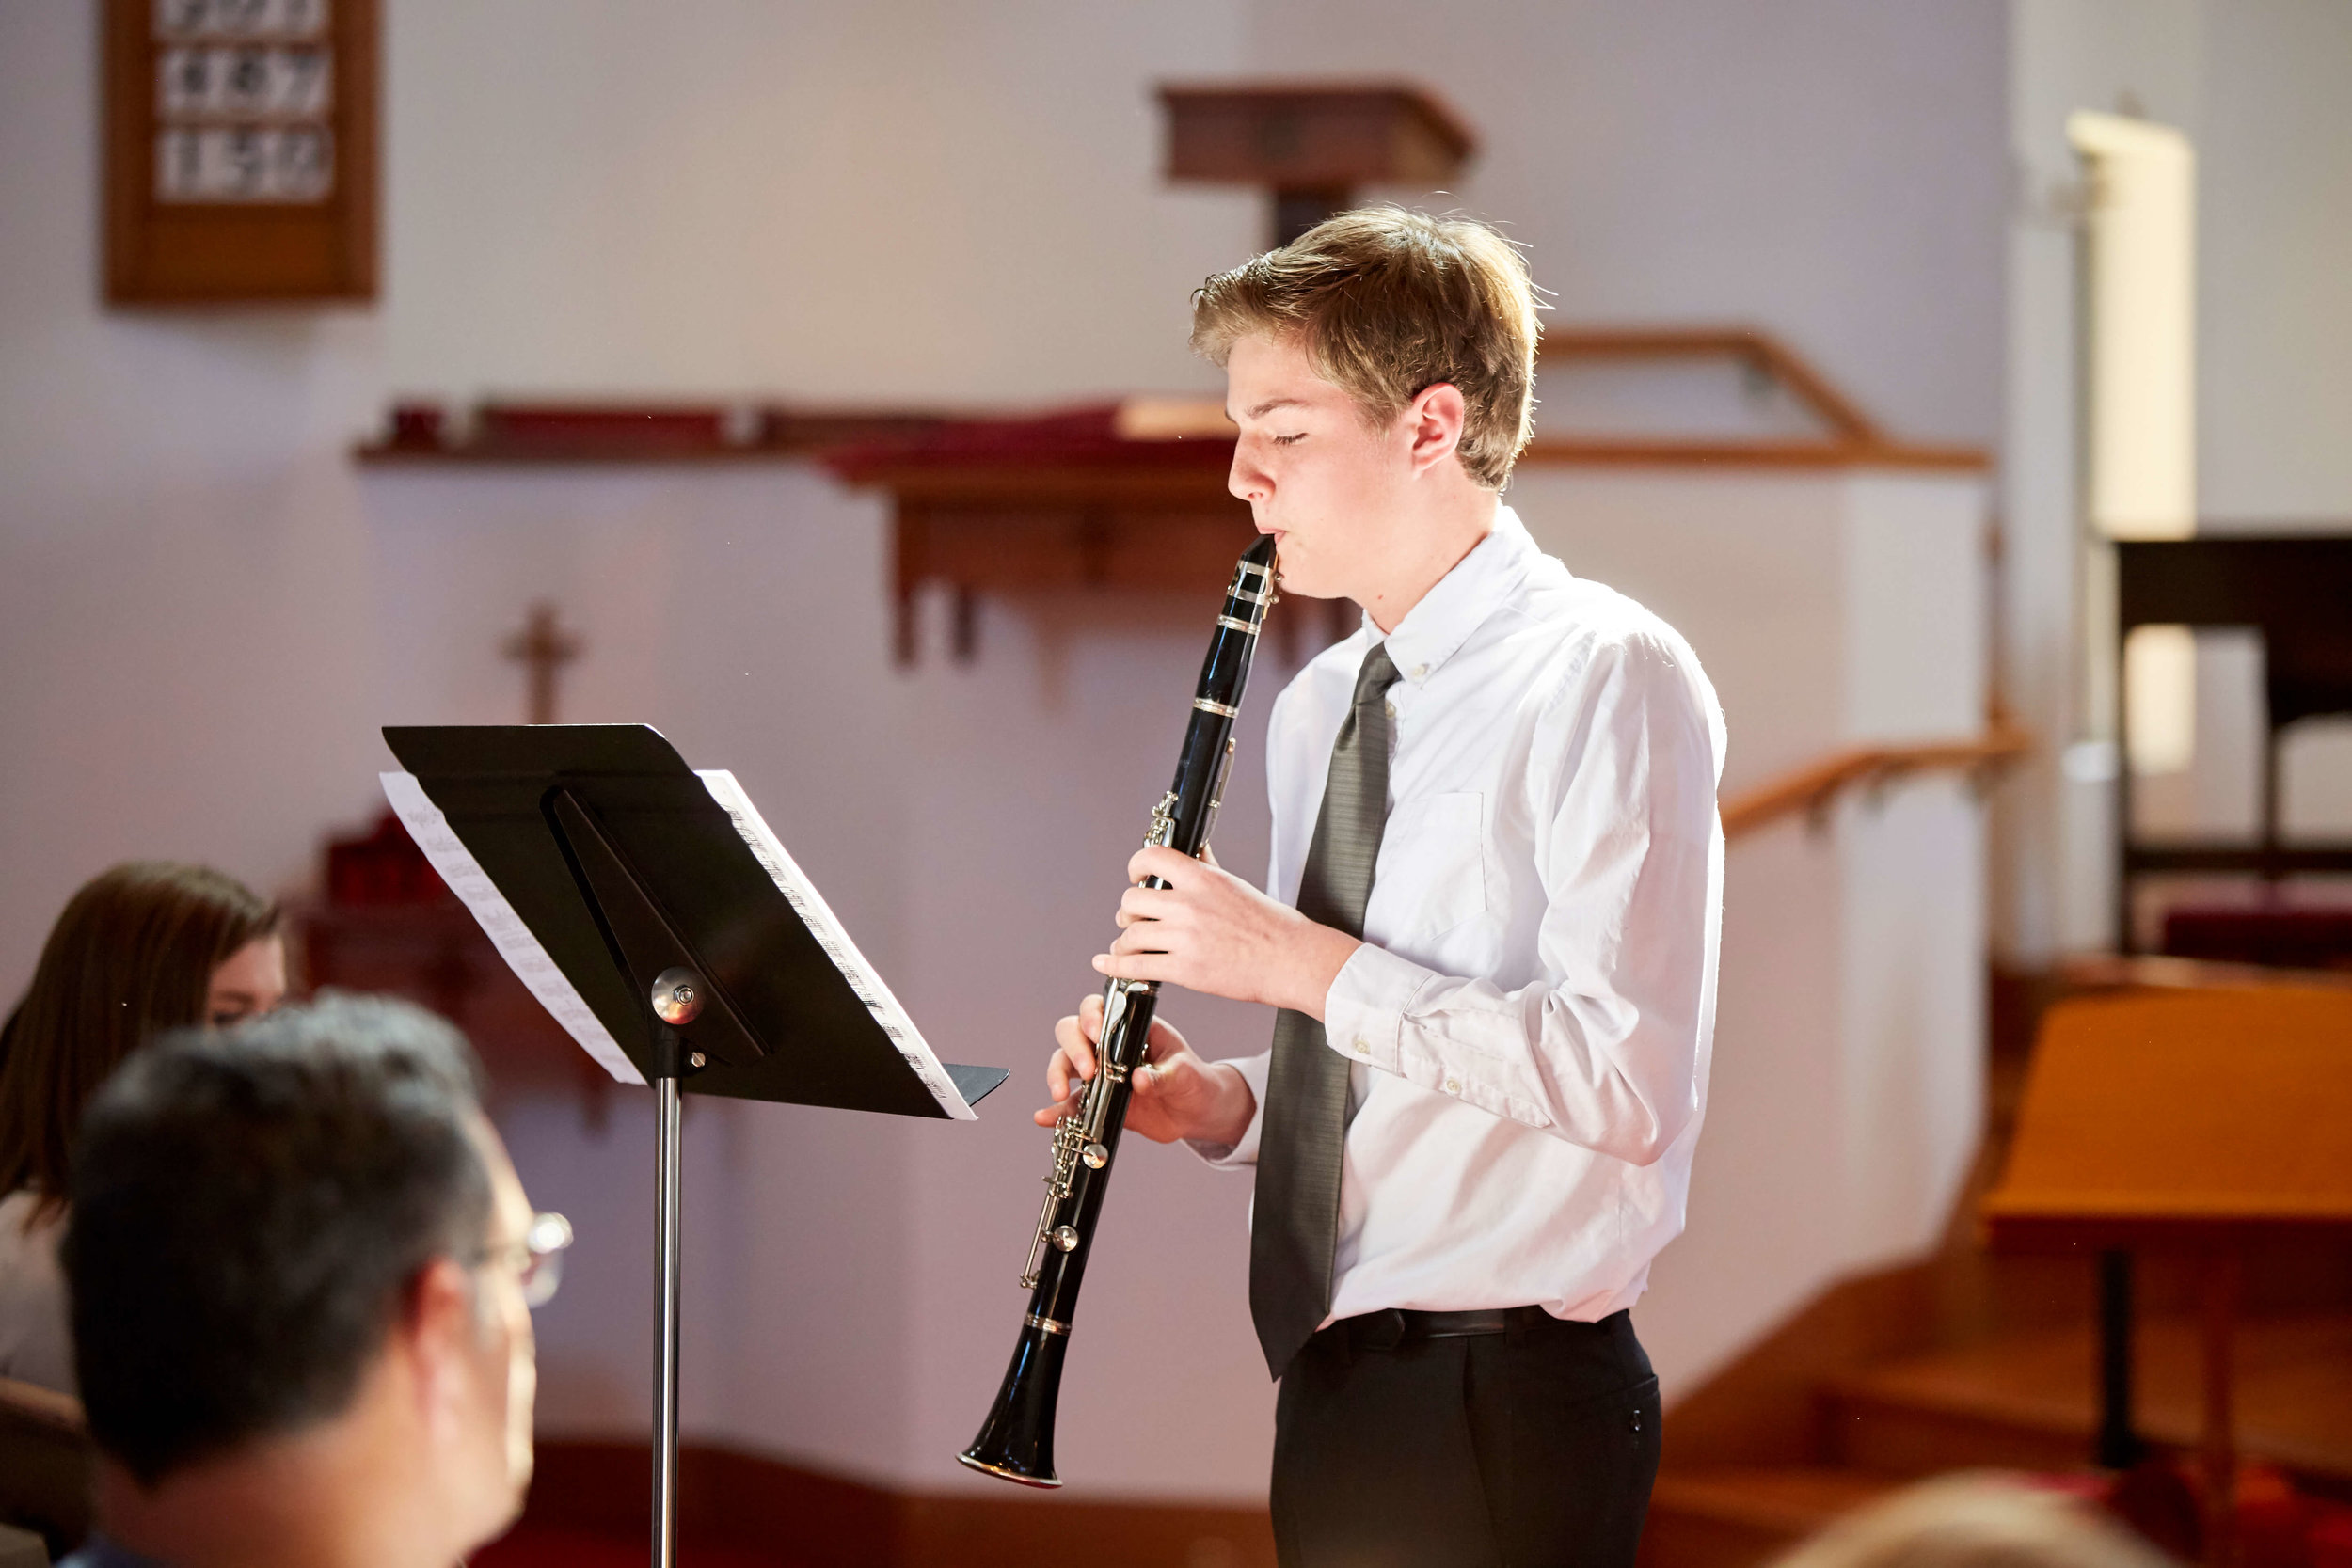 FLUTE & CLARINET LESSONS IN CINCINNATI & MASON   for beginner, intermediate, and advanced students  CALL 513-560-9175 TODAY TO SCHEDULE YOUR TRIAL LESSON   Request Info